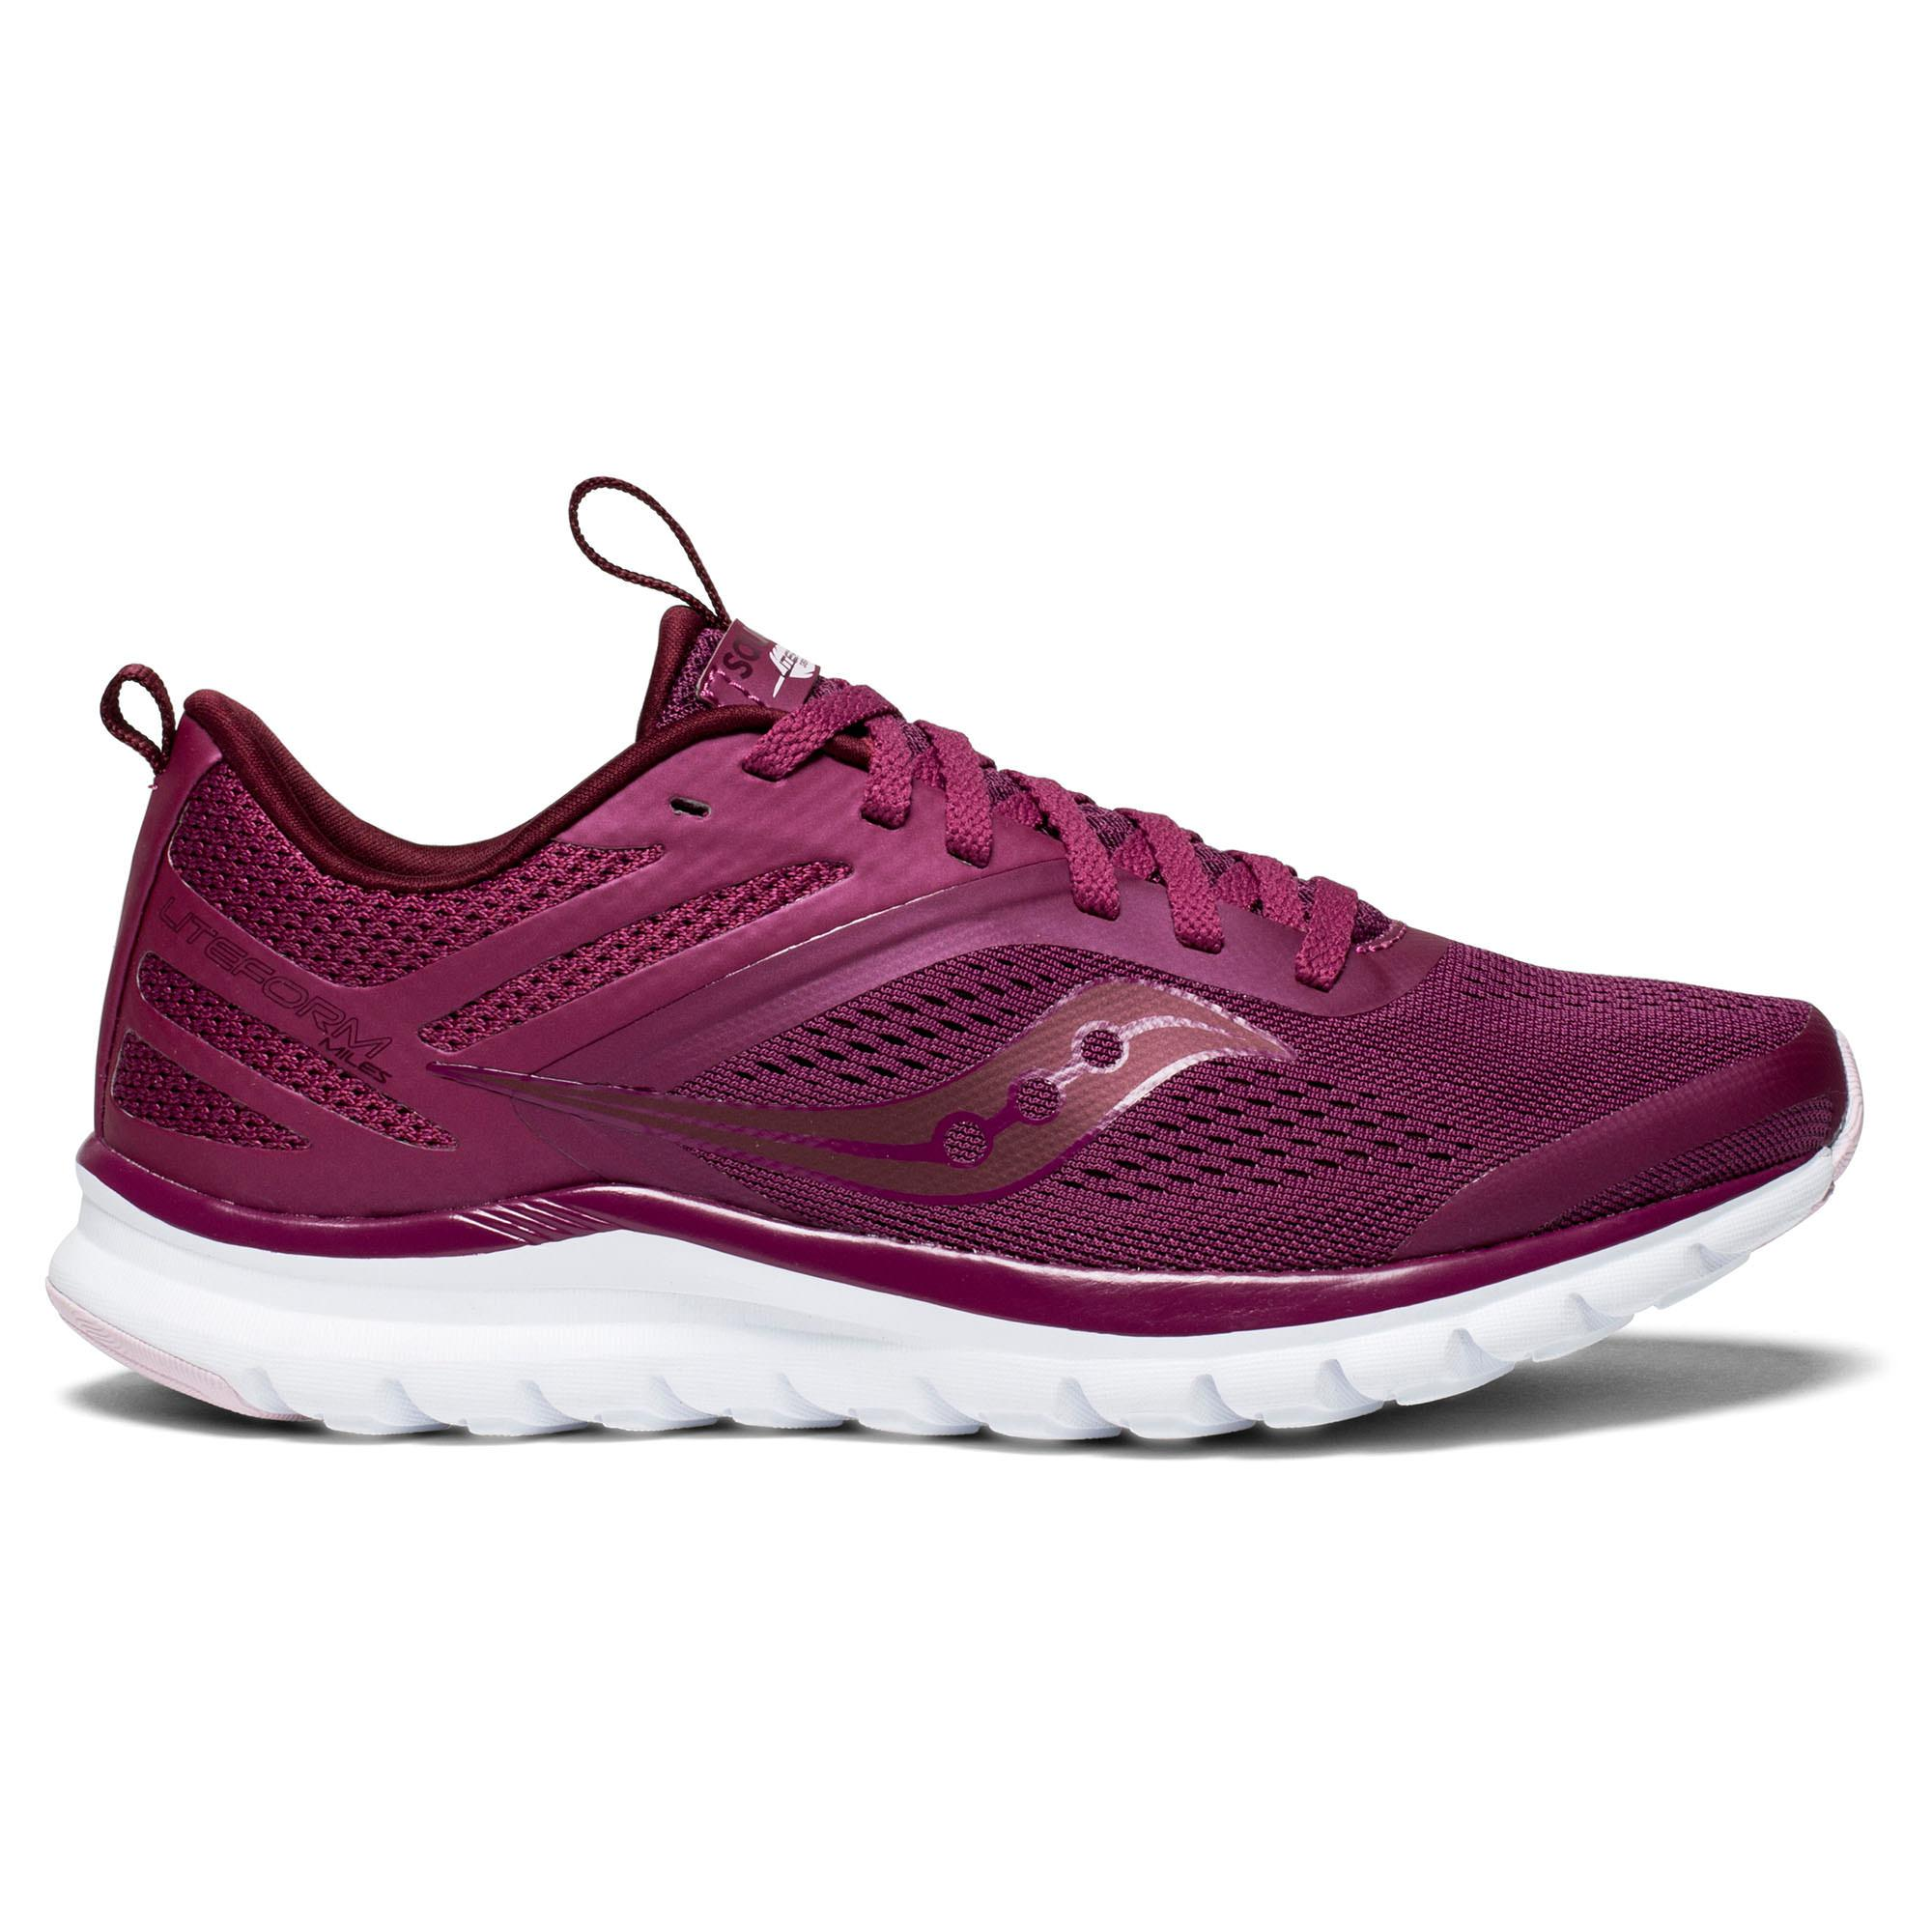 Running Saucony For Sale Philippines Shoes Women gyb6f7vIYm